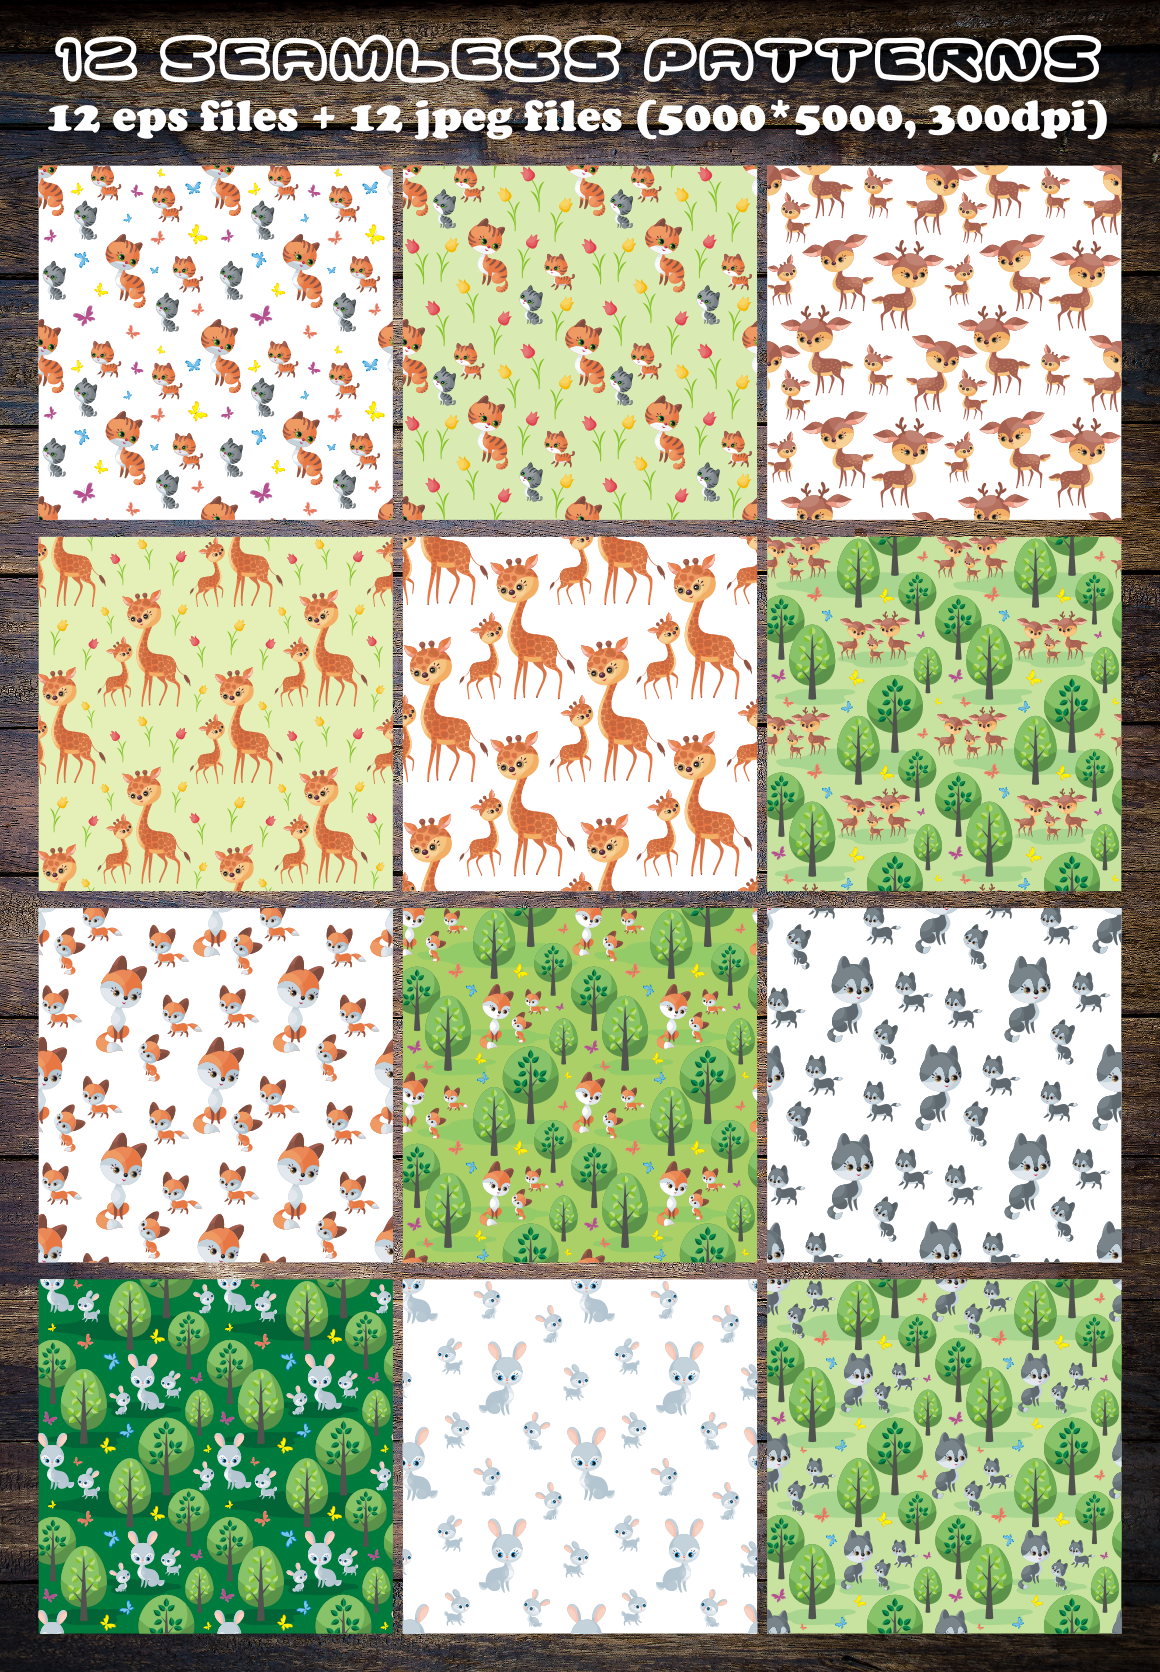 Cute Animals and Their Babies Seamless Patterns Graphic By Olga Belova Image 2